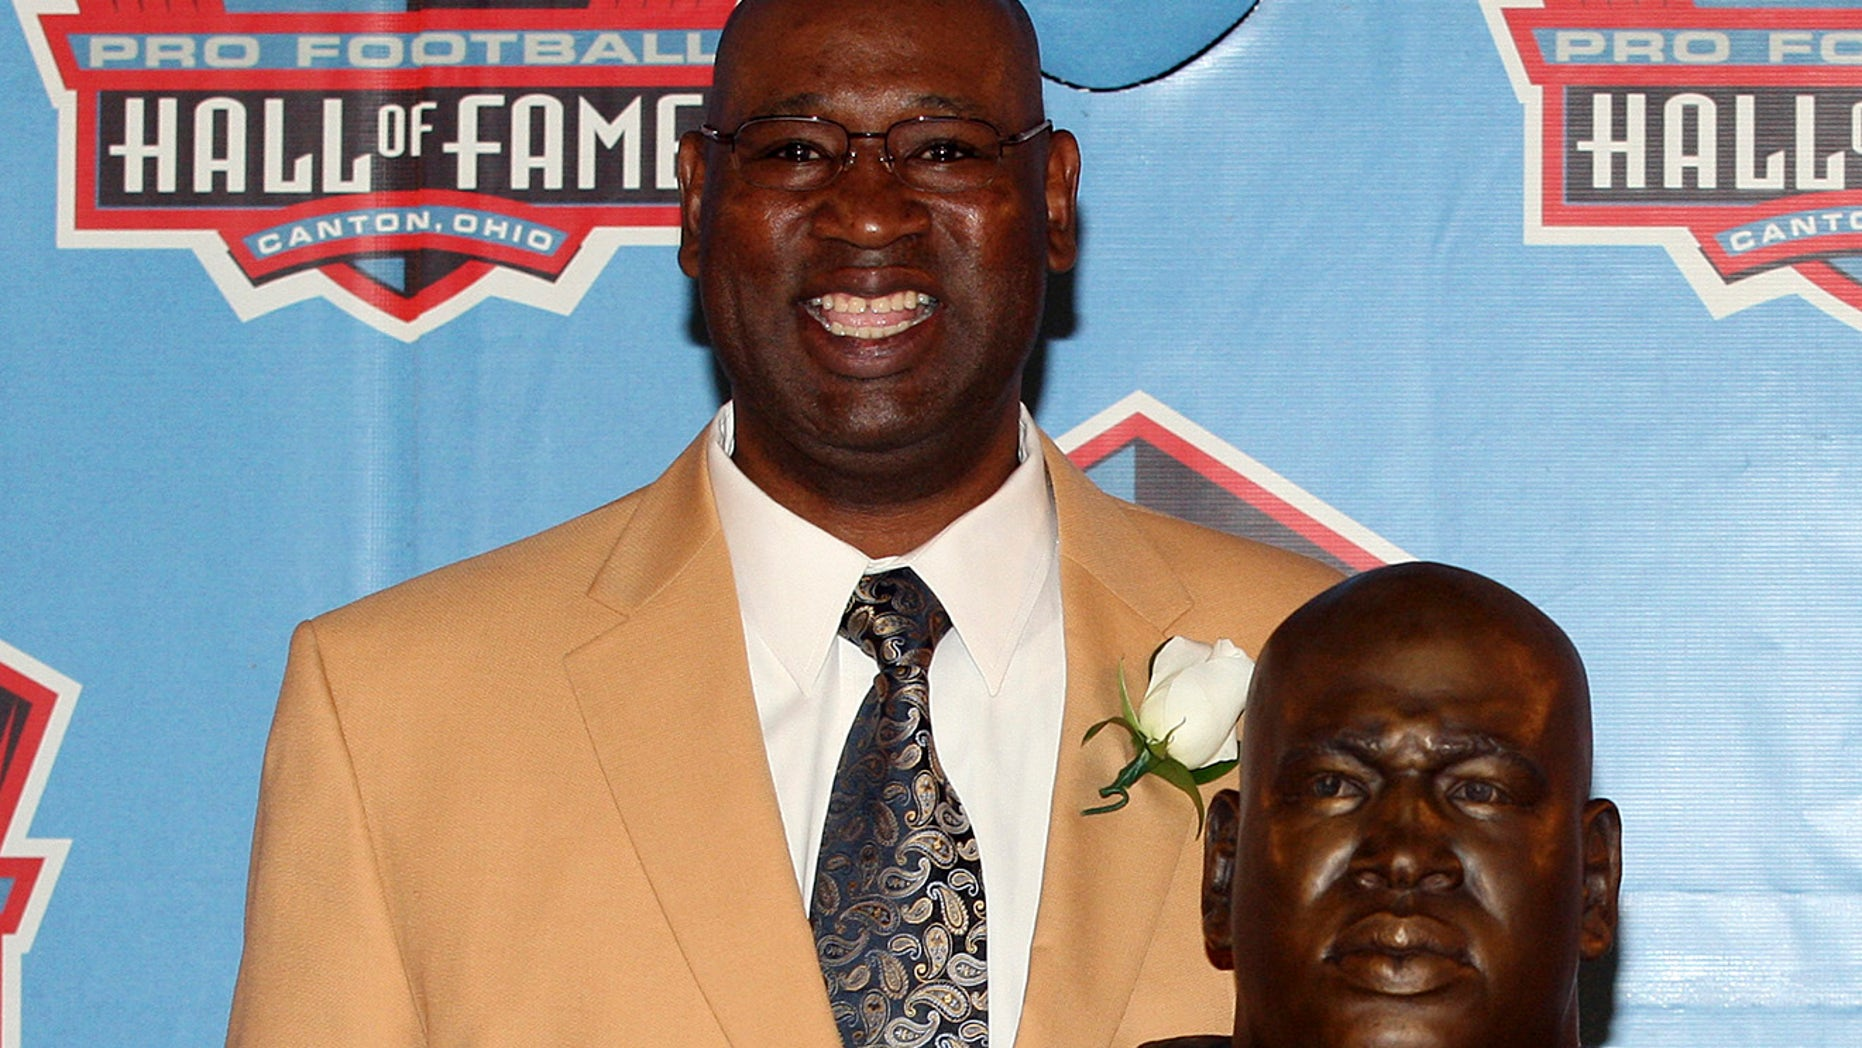 Former Seattle Seahawk Cortez Kennedy stands with his bust after being accepted into the Pro Football Hall of Fame in Canton, Ohio August 4, 2012. Kennedy was found dead on Tuesday in Orlando. REUTERS/Aaron Josefczyk